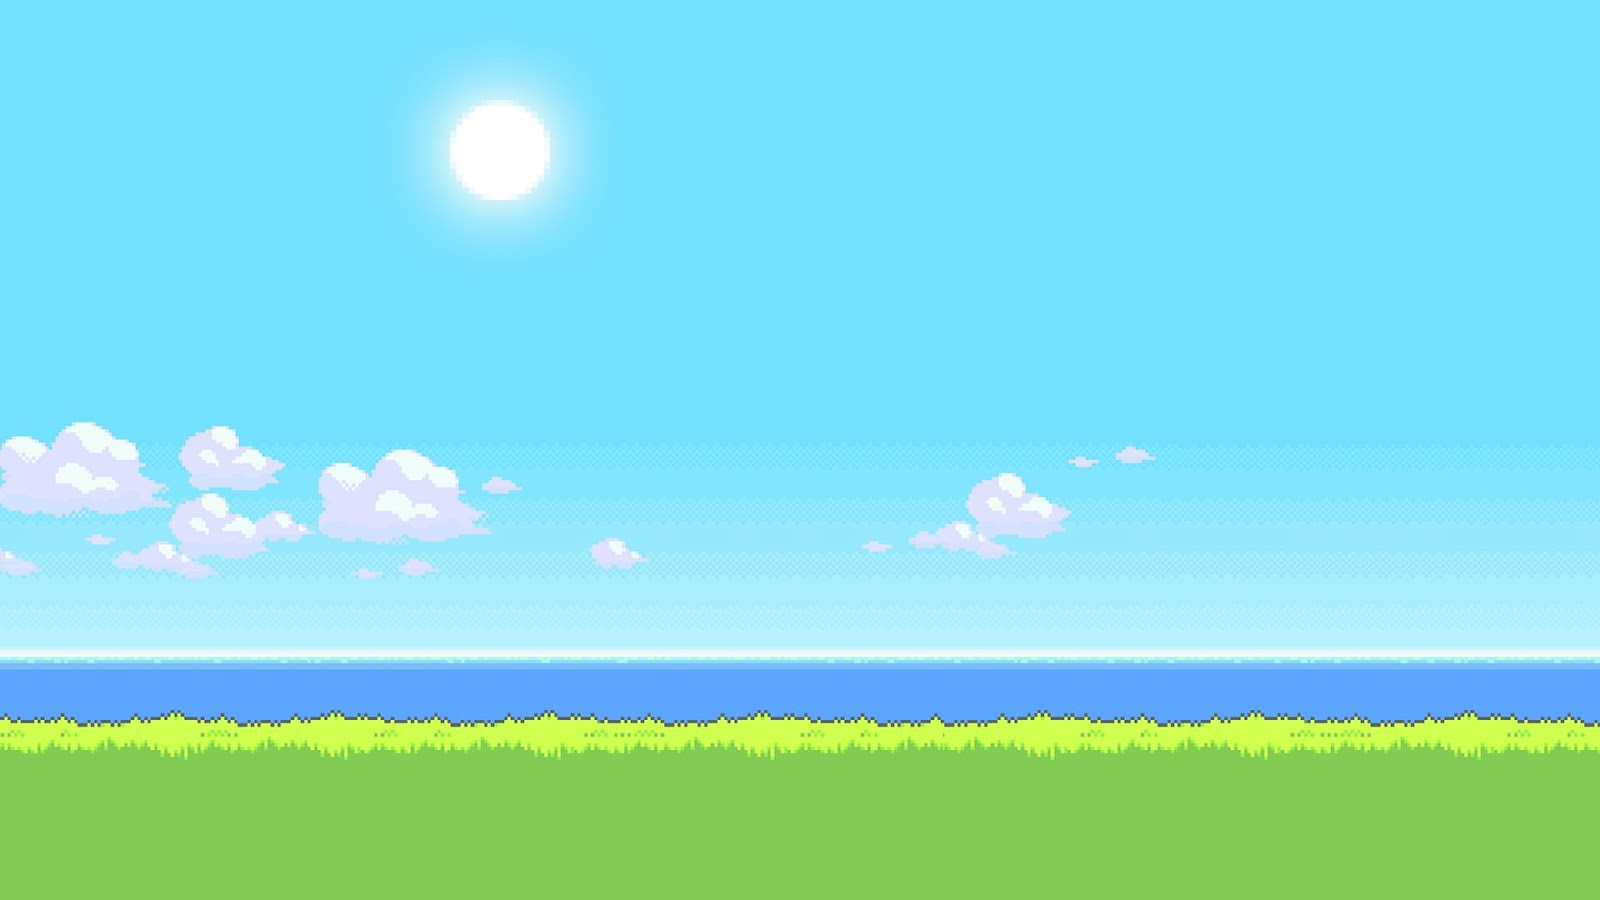 8 bit landscape wallpaper